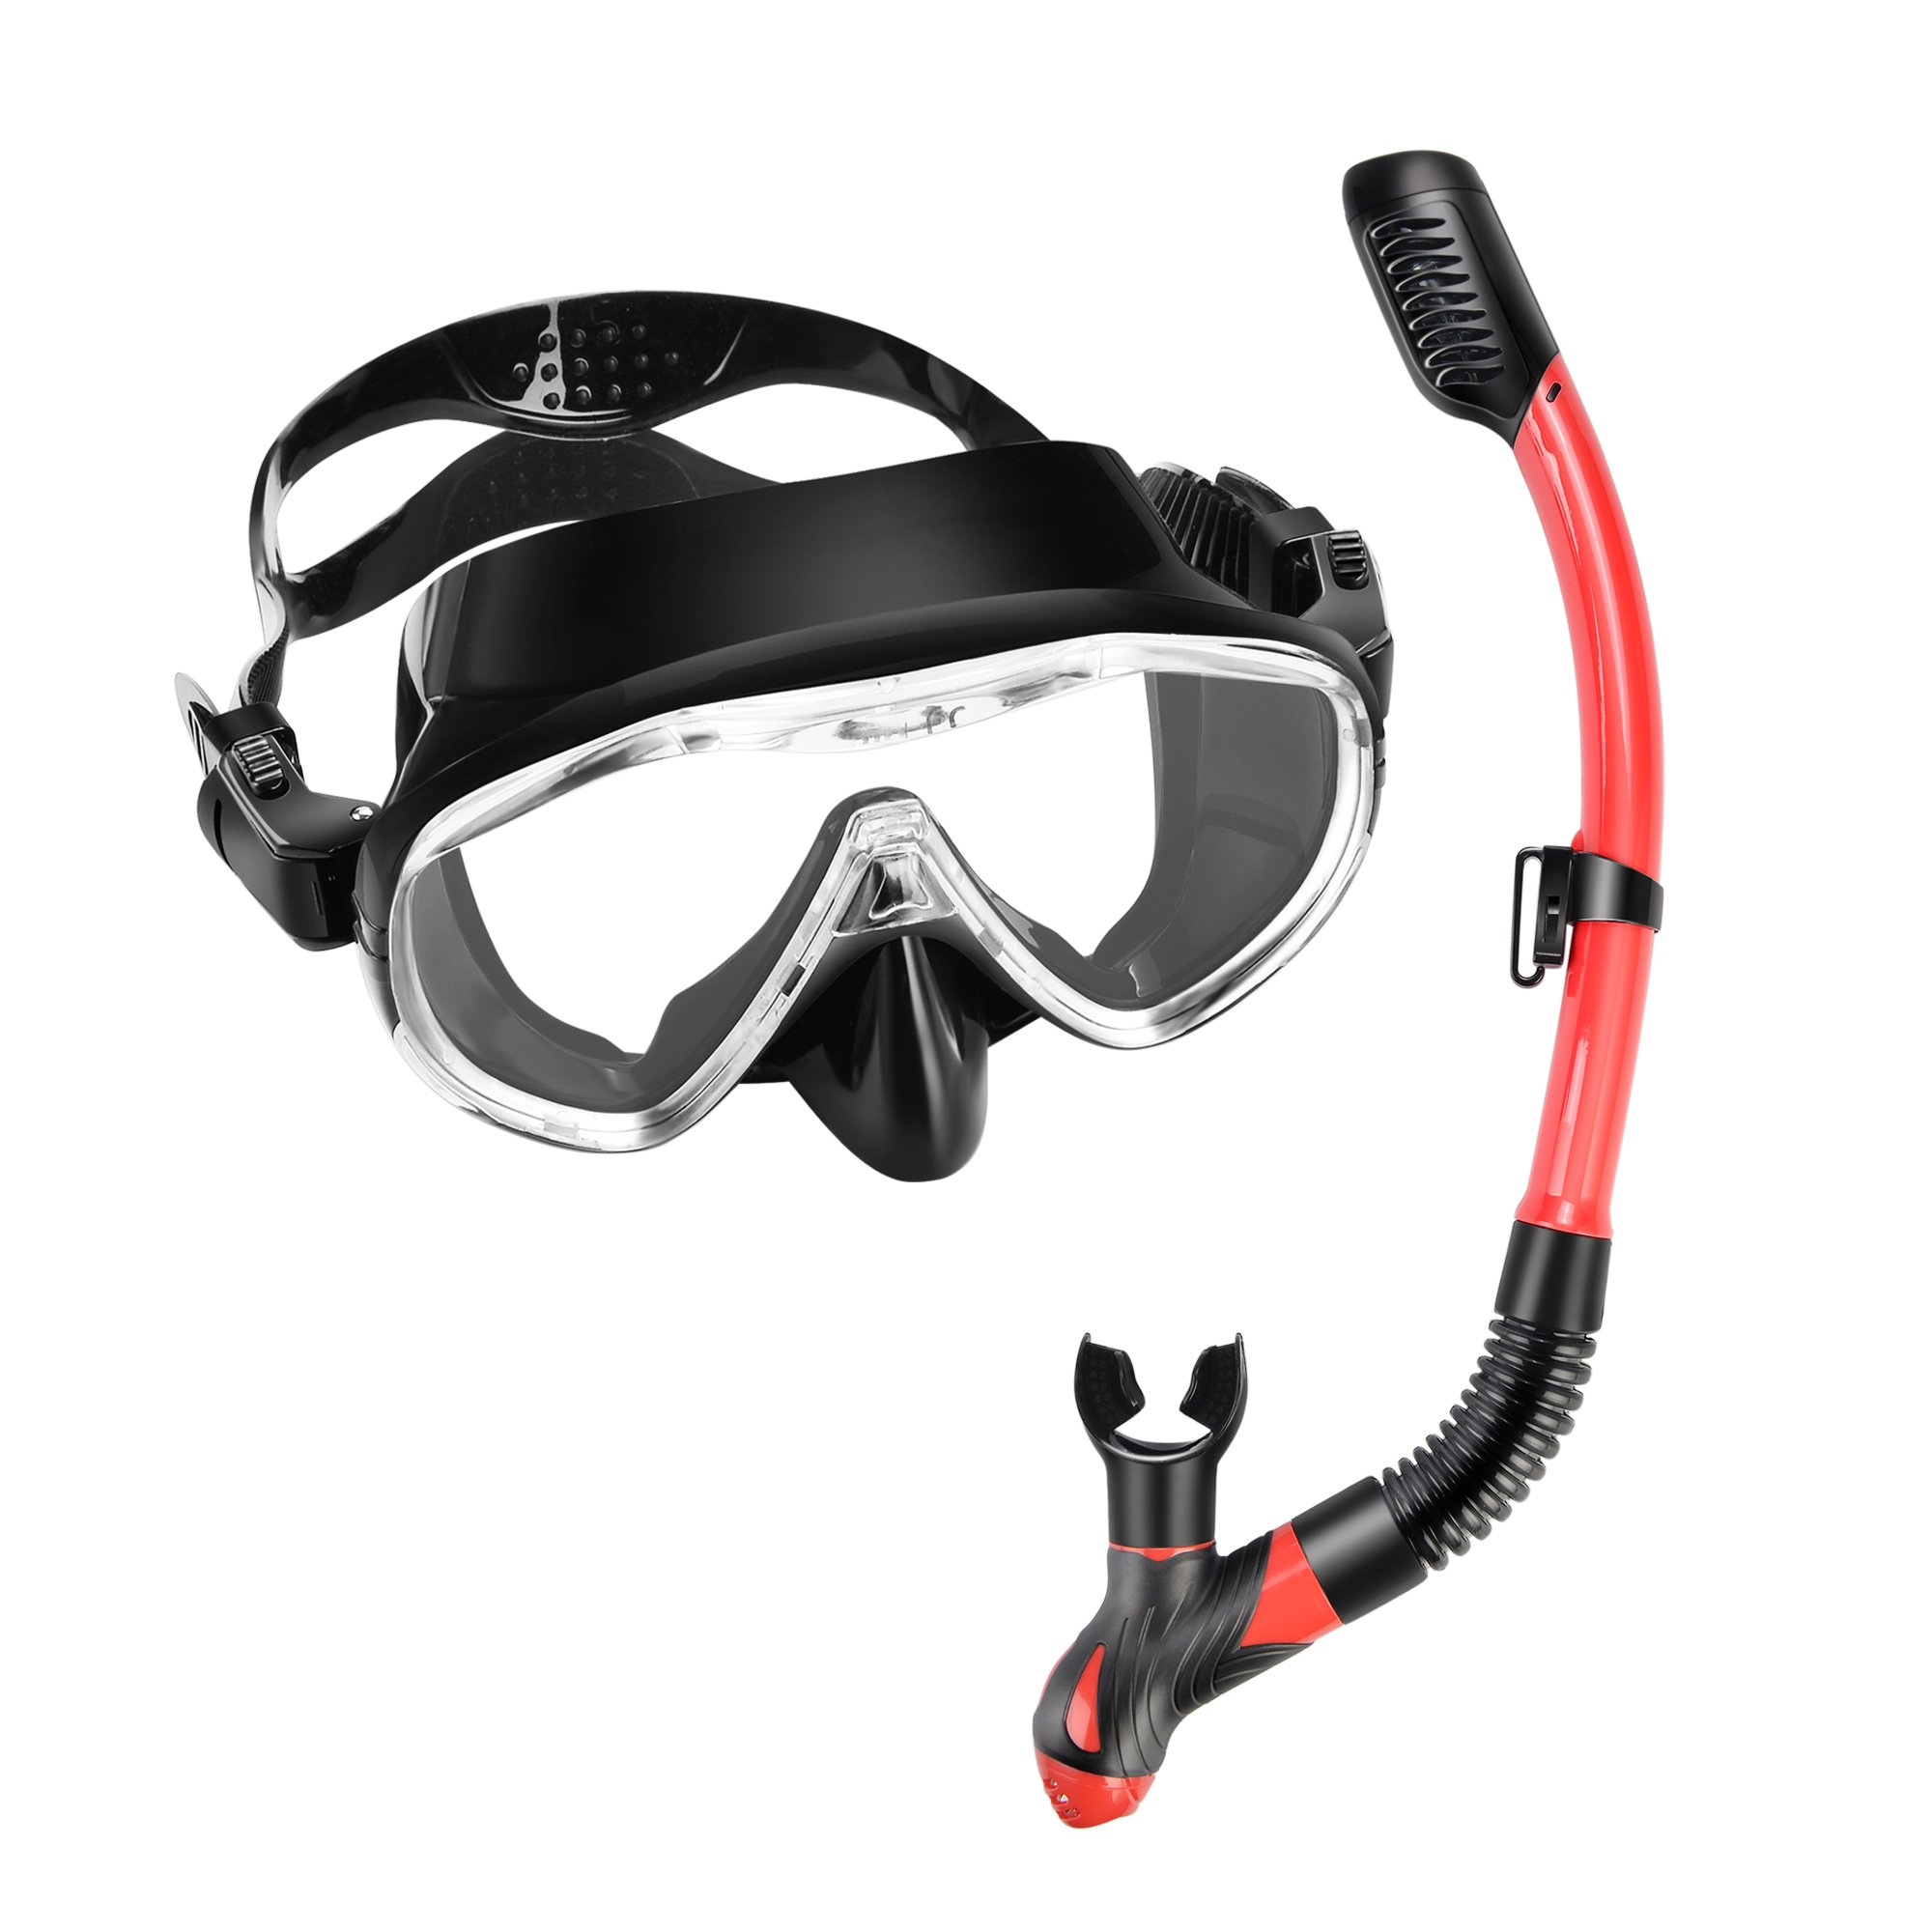 Scuba Diving Mask Snorkel Set – Tempered Glass One Window Lens Panoramic view Anti-Fog, Anti-Splash Protection Diving Mask & Purg Valve Dry Top Snorkel for Adults, Freediving, Swimming, Snorkeling